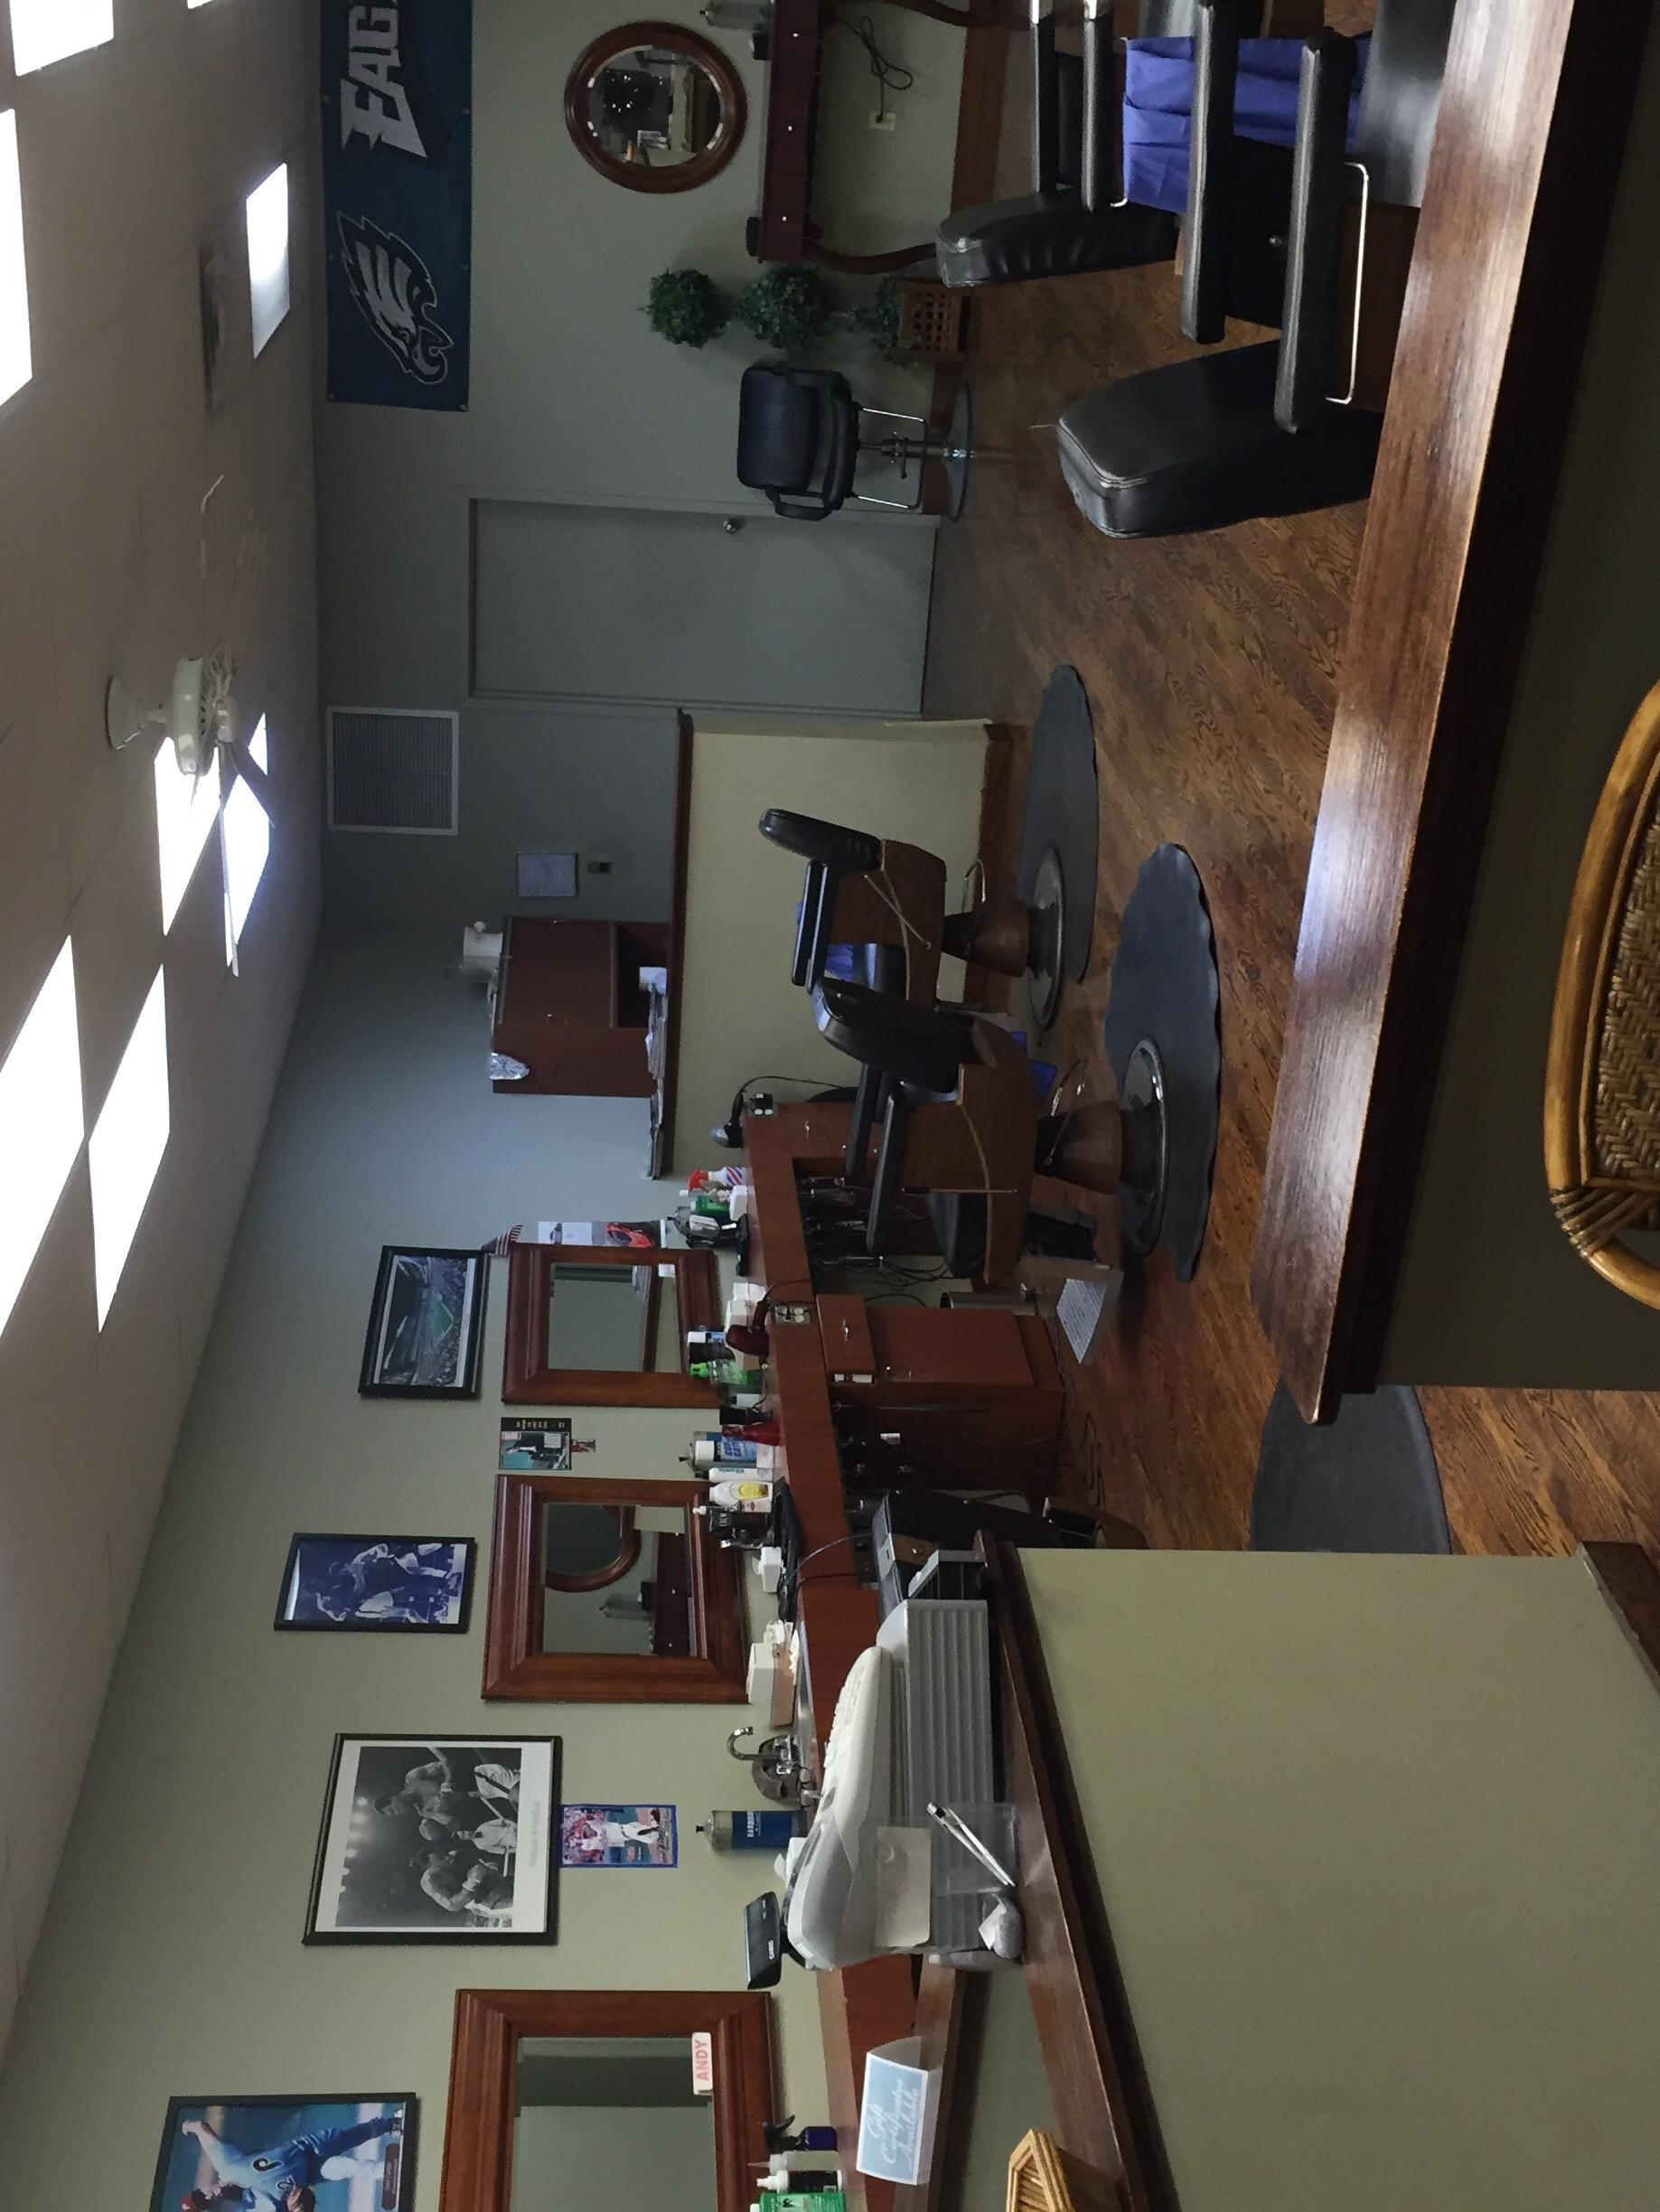 Paoli Pa Gentlemens Choice Barber Shop Find Gentlemens Choice